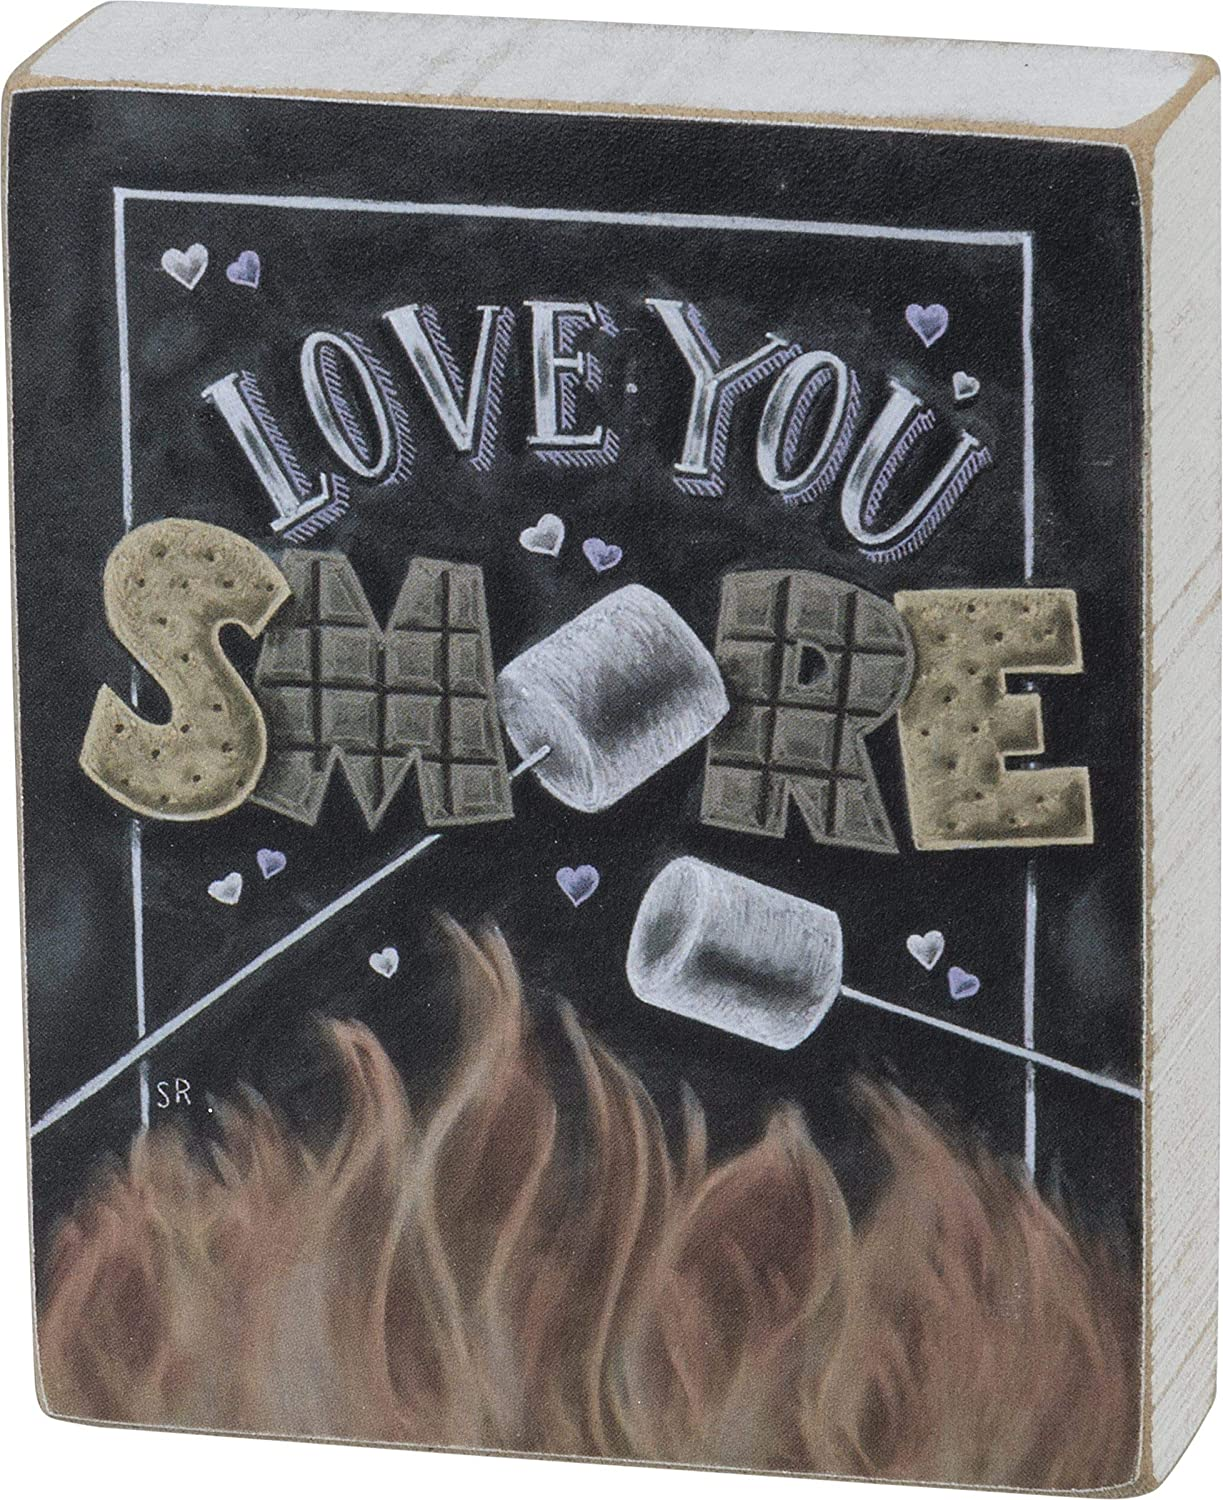 Primitives by Kathy 105201 Love You Smore Wooden Block Sign, 4.25-Inch, Multicolor